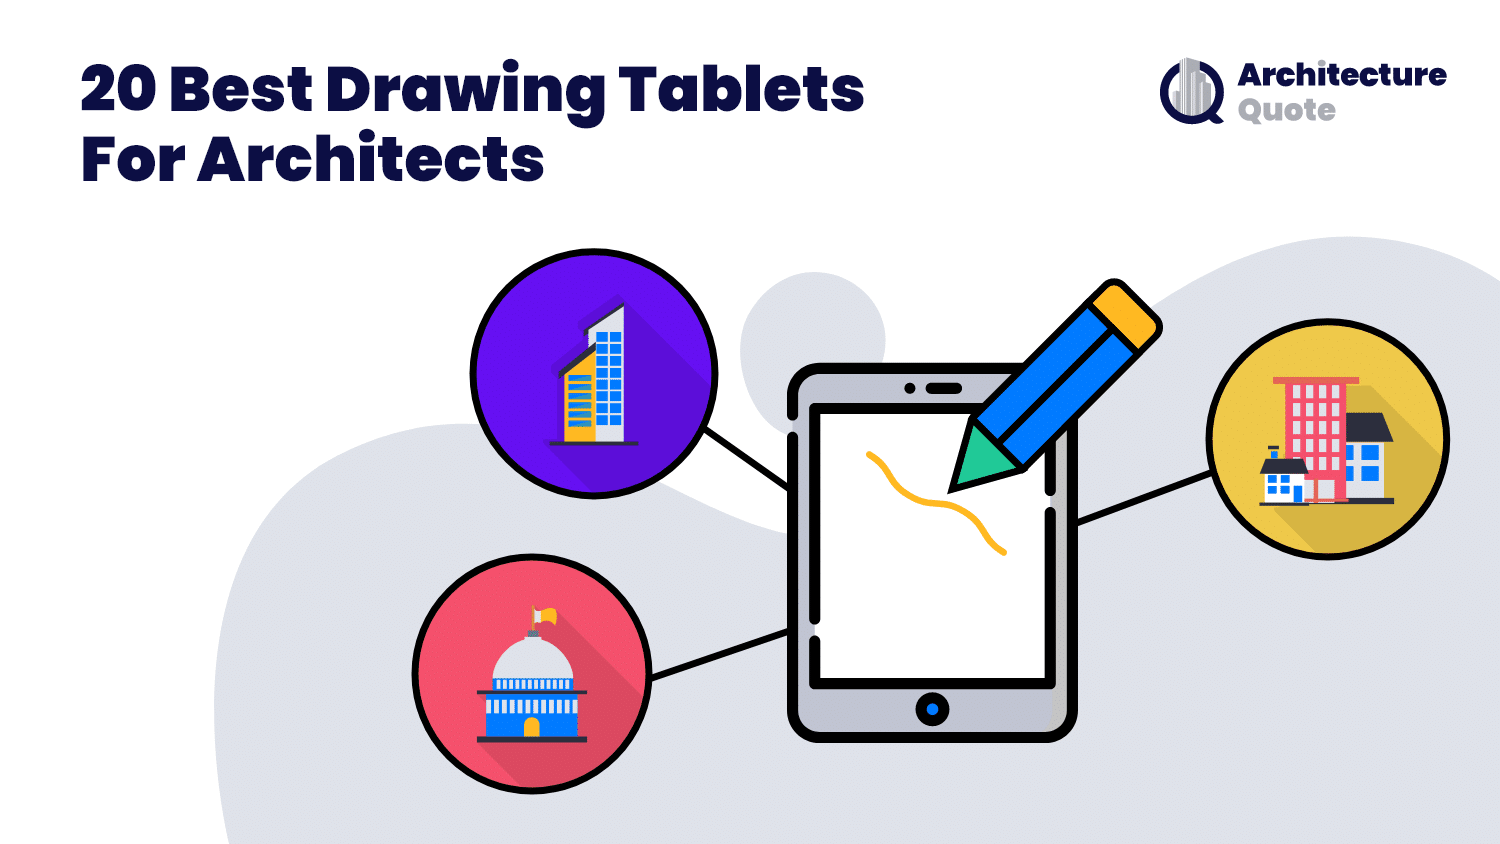 20 Best Drawing Tablets For Architects feature article image